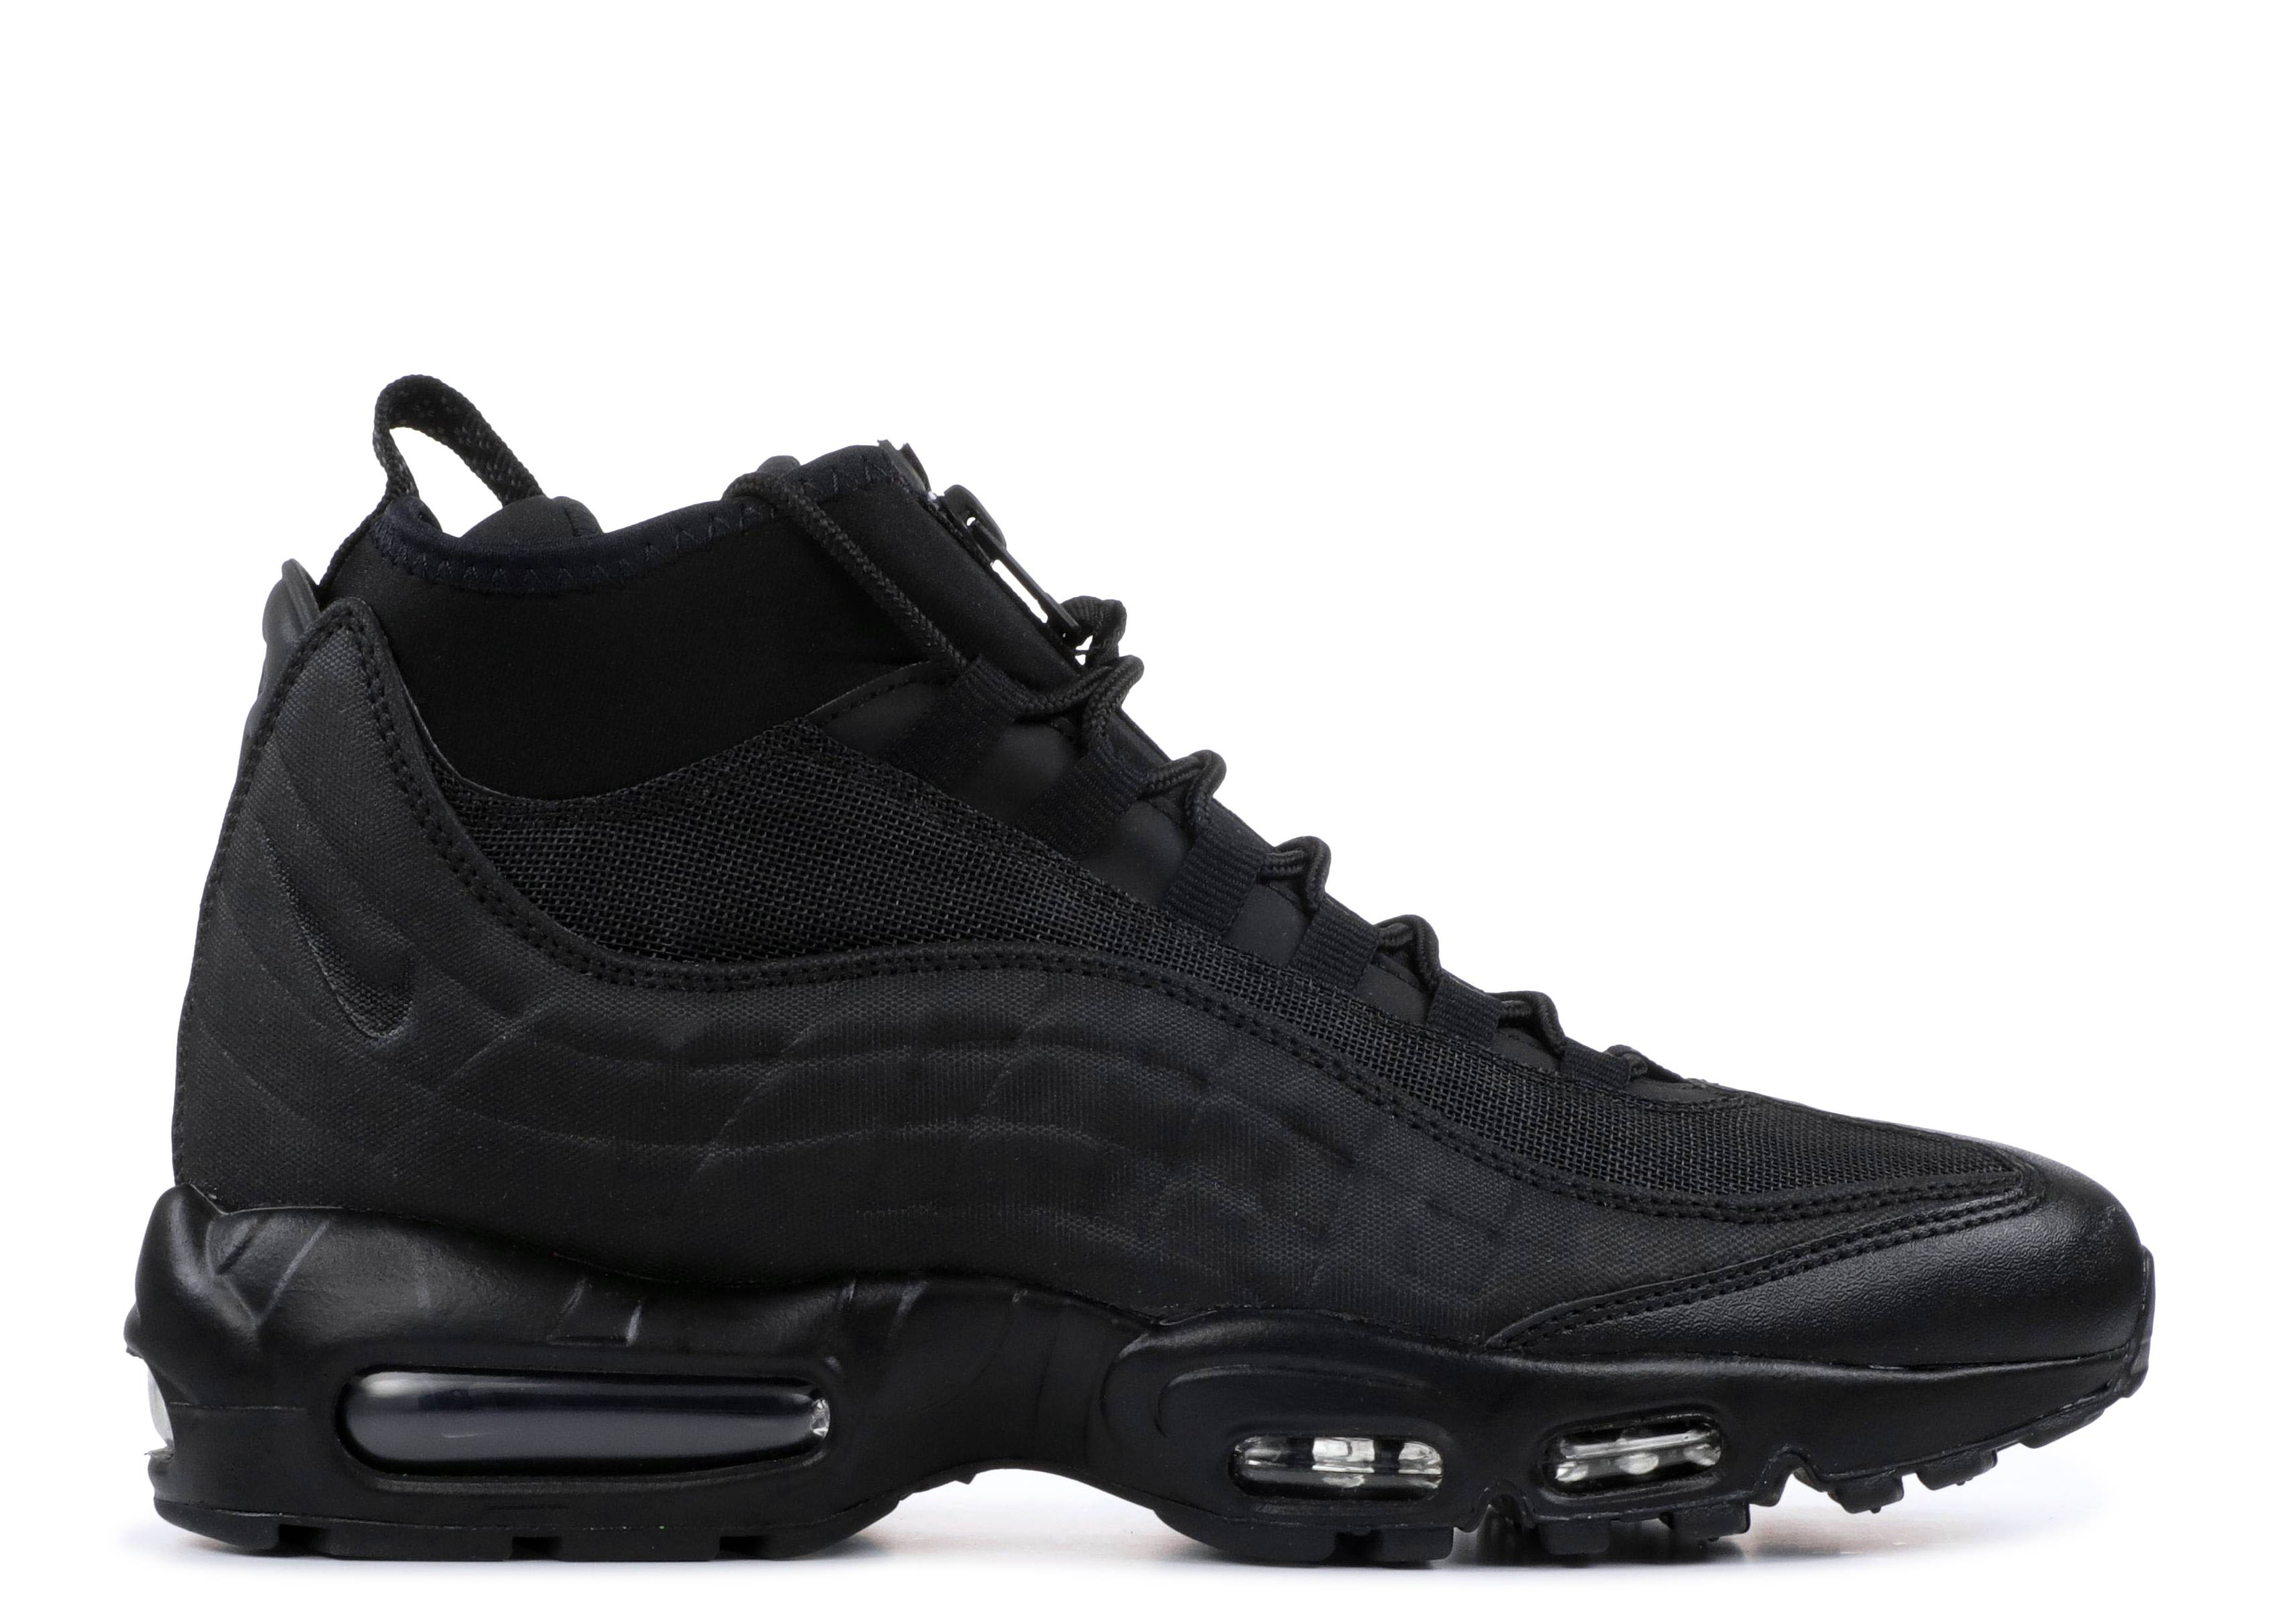 520bf14aad6b Nike Air Max 95 Sneakerboot - Nike - 806809 002 - black black ...